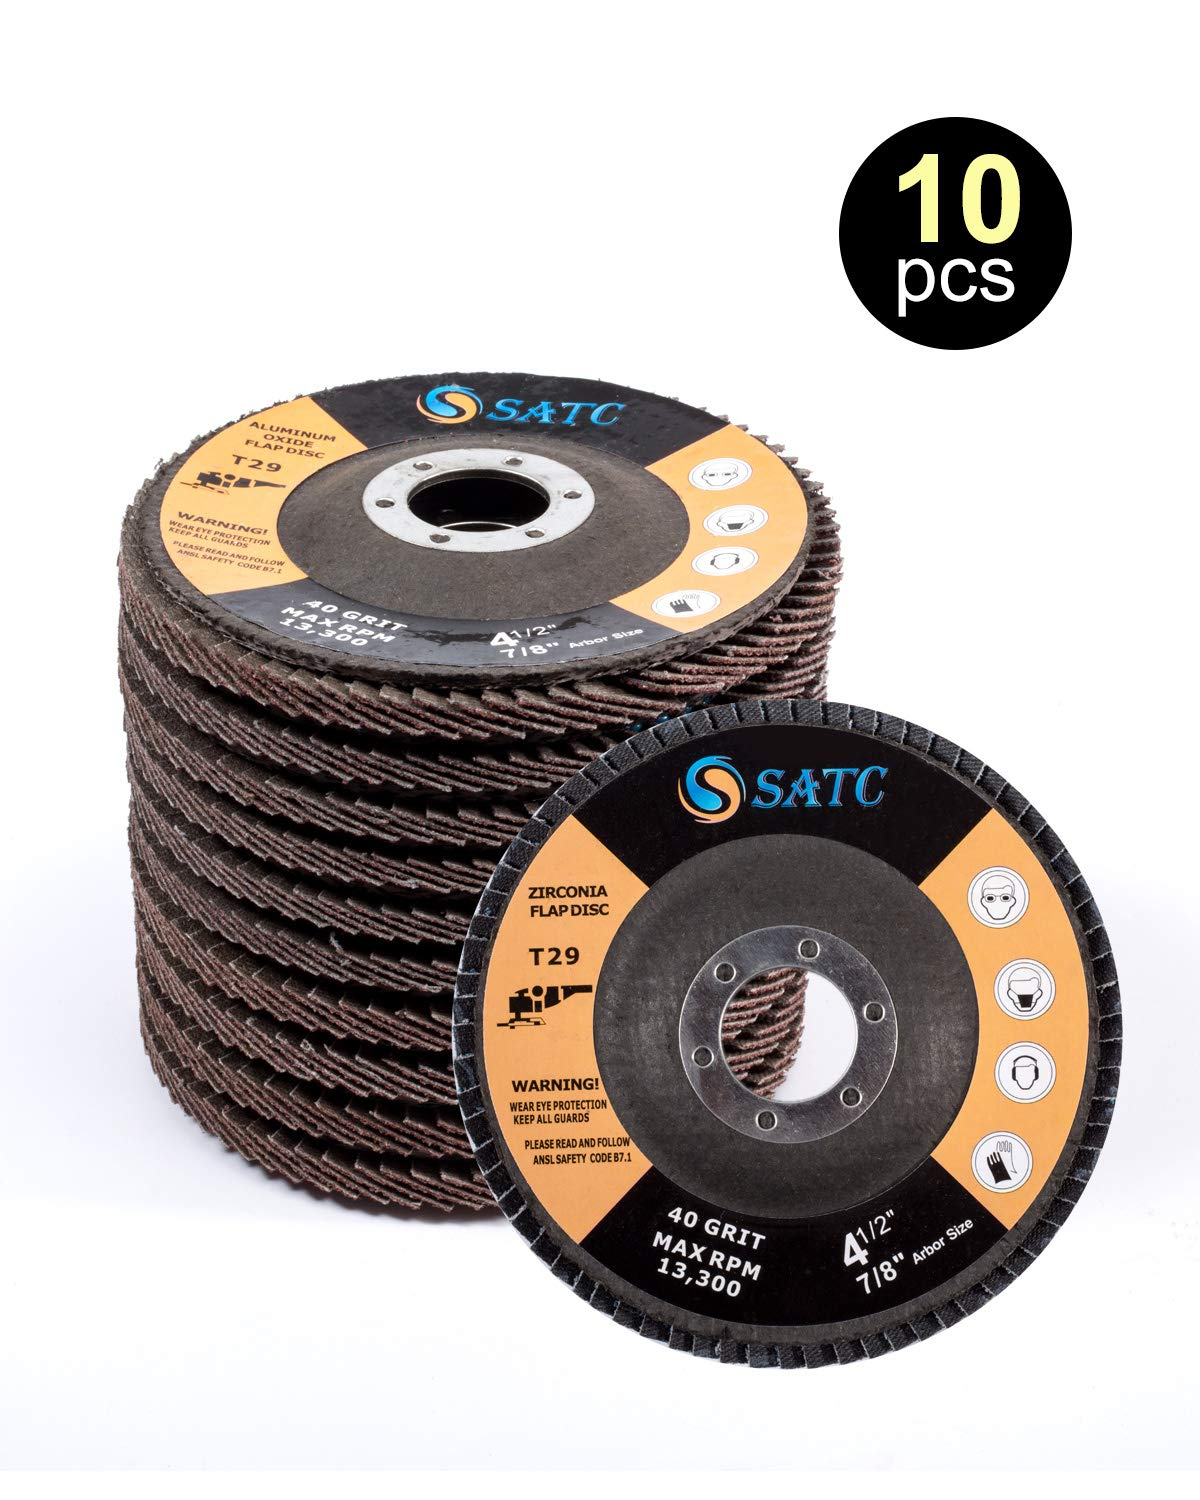 Flap Disc 10 PCS 40 Grit Grinding Wheel Aluminum Oxide 29 Flap Type SATC